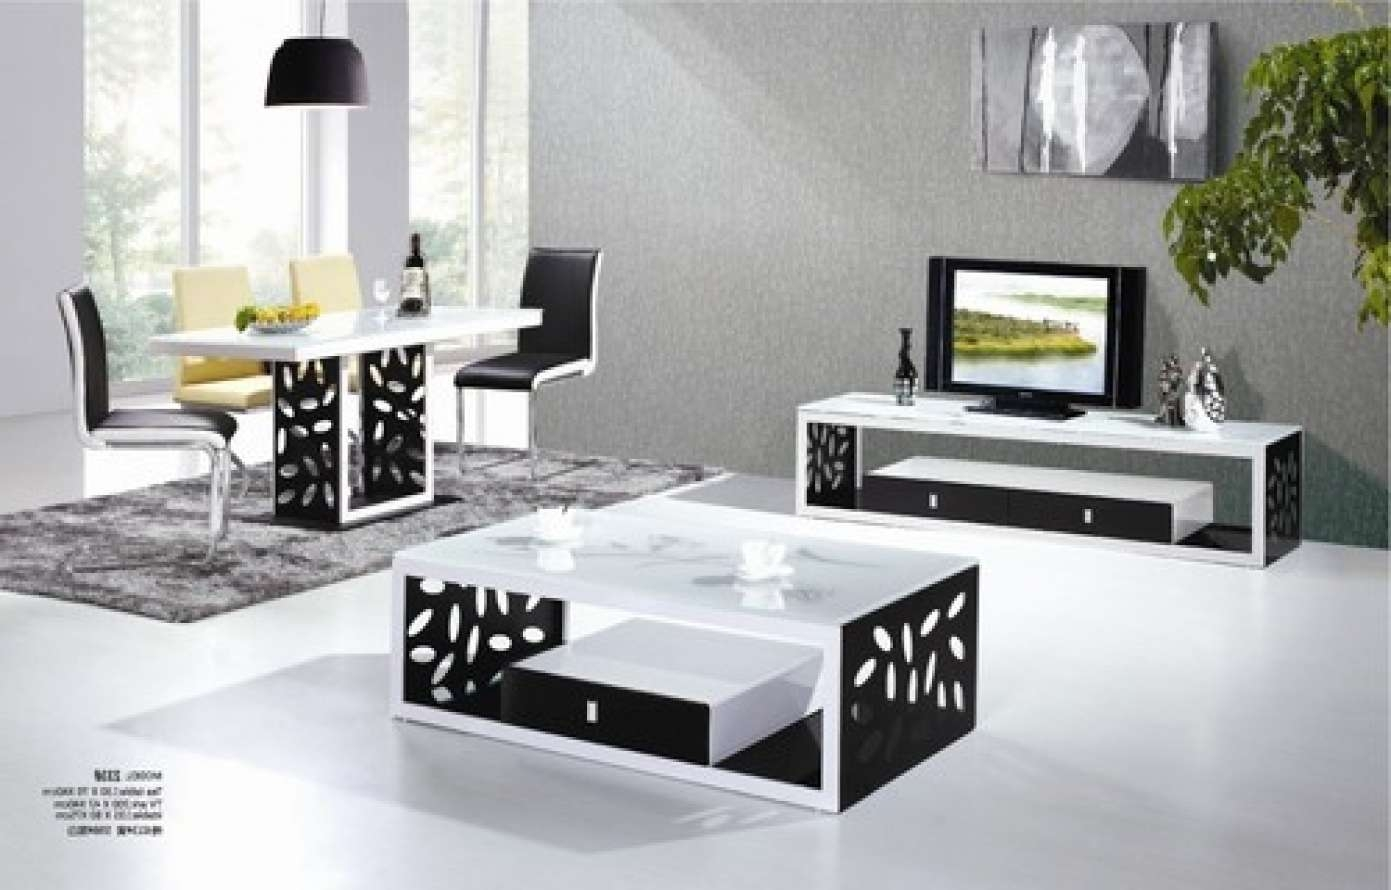 Coffee Table : Tv Stand Coffee Table And End Setscheap Setstv For Most Current Coffee Table And Tv Unit Sets (View 8 of 20)